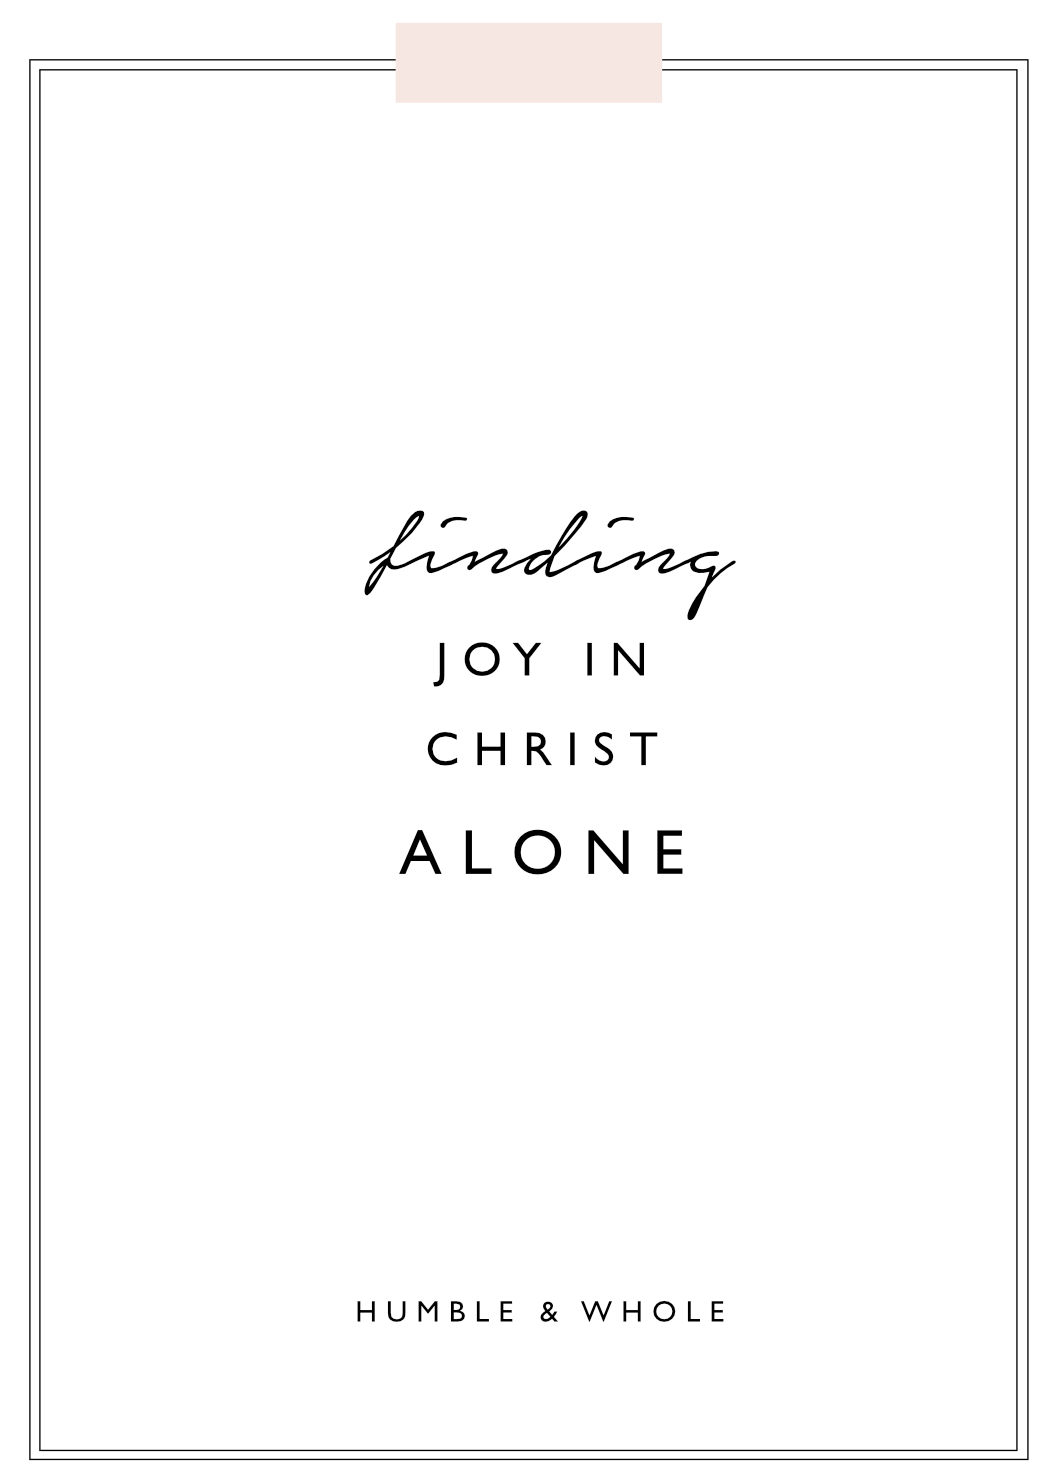 Relying on circumstances and events for joy will leave you empty. As believers, we can choose to dwell in the true, ever-lasting joy of Jesus Christ. Click through to discover how I turned from relying on events to abiding in Jesus for joy.